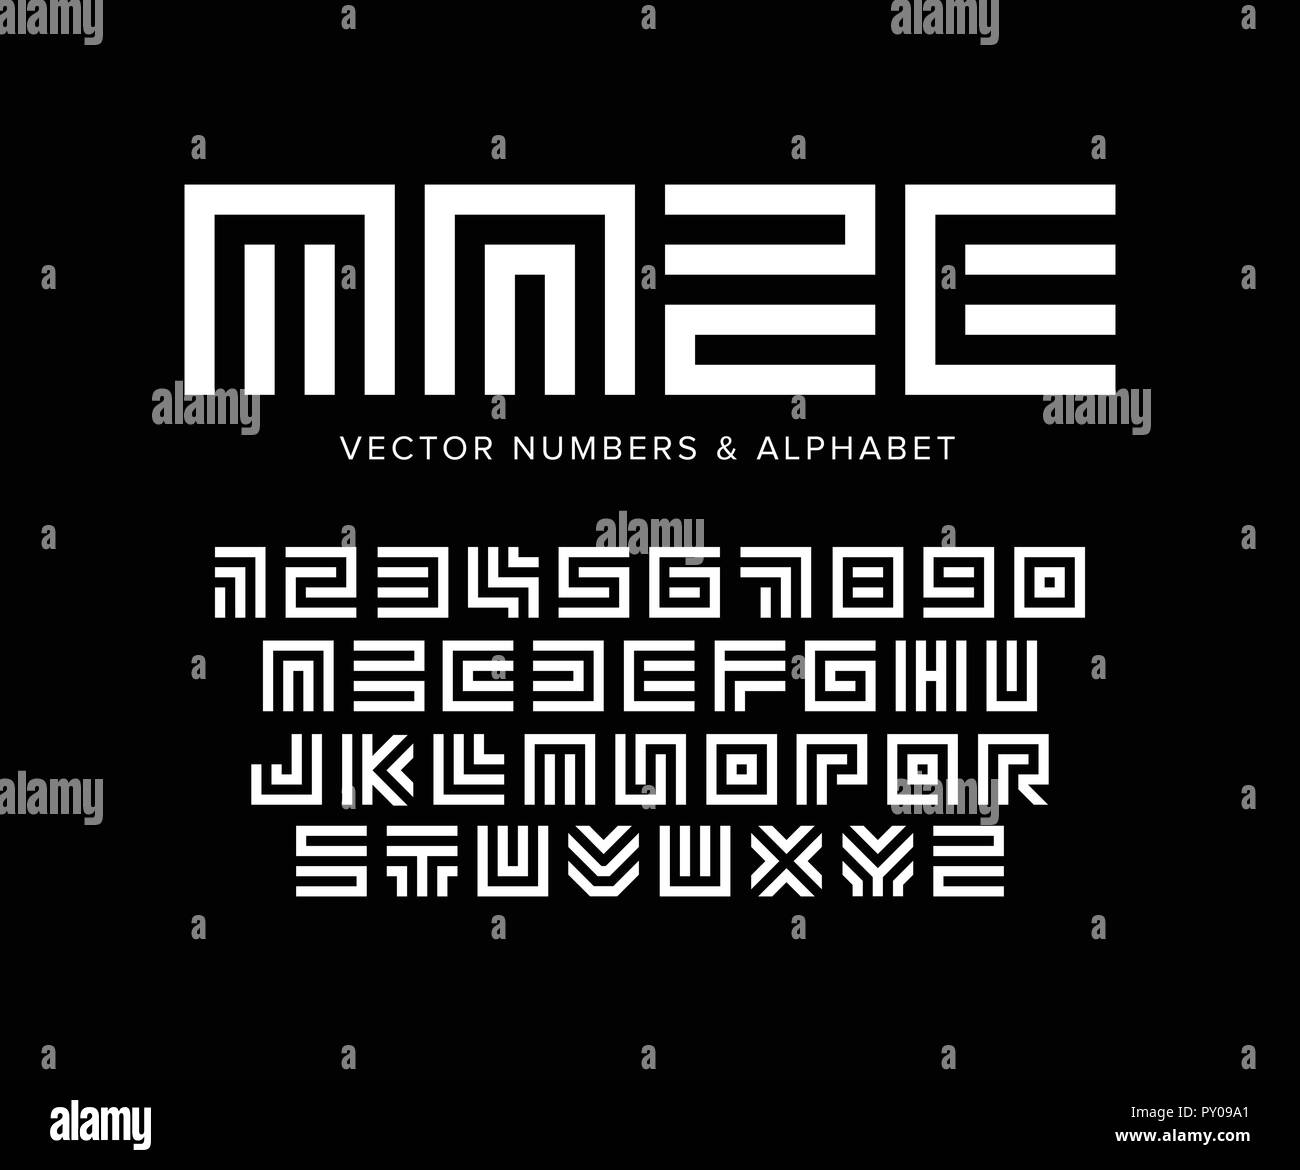 Geometric vector letters and numbers set. Maze alphabet. White logo template on black background. Typography design. - Stock Image